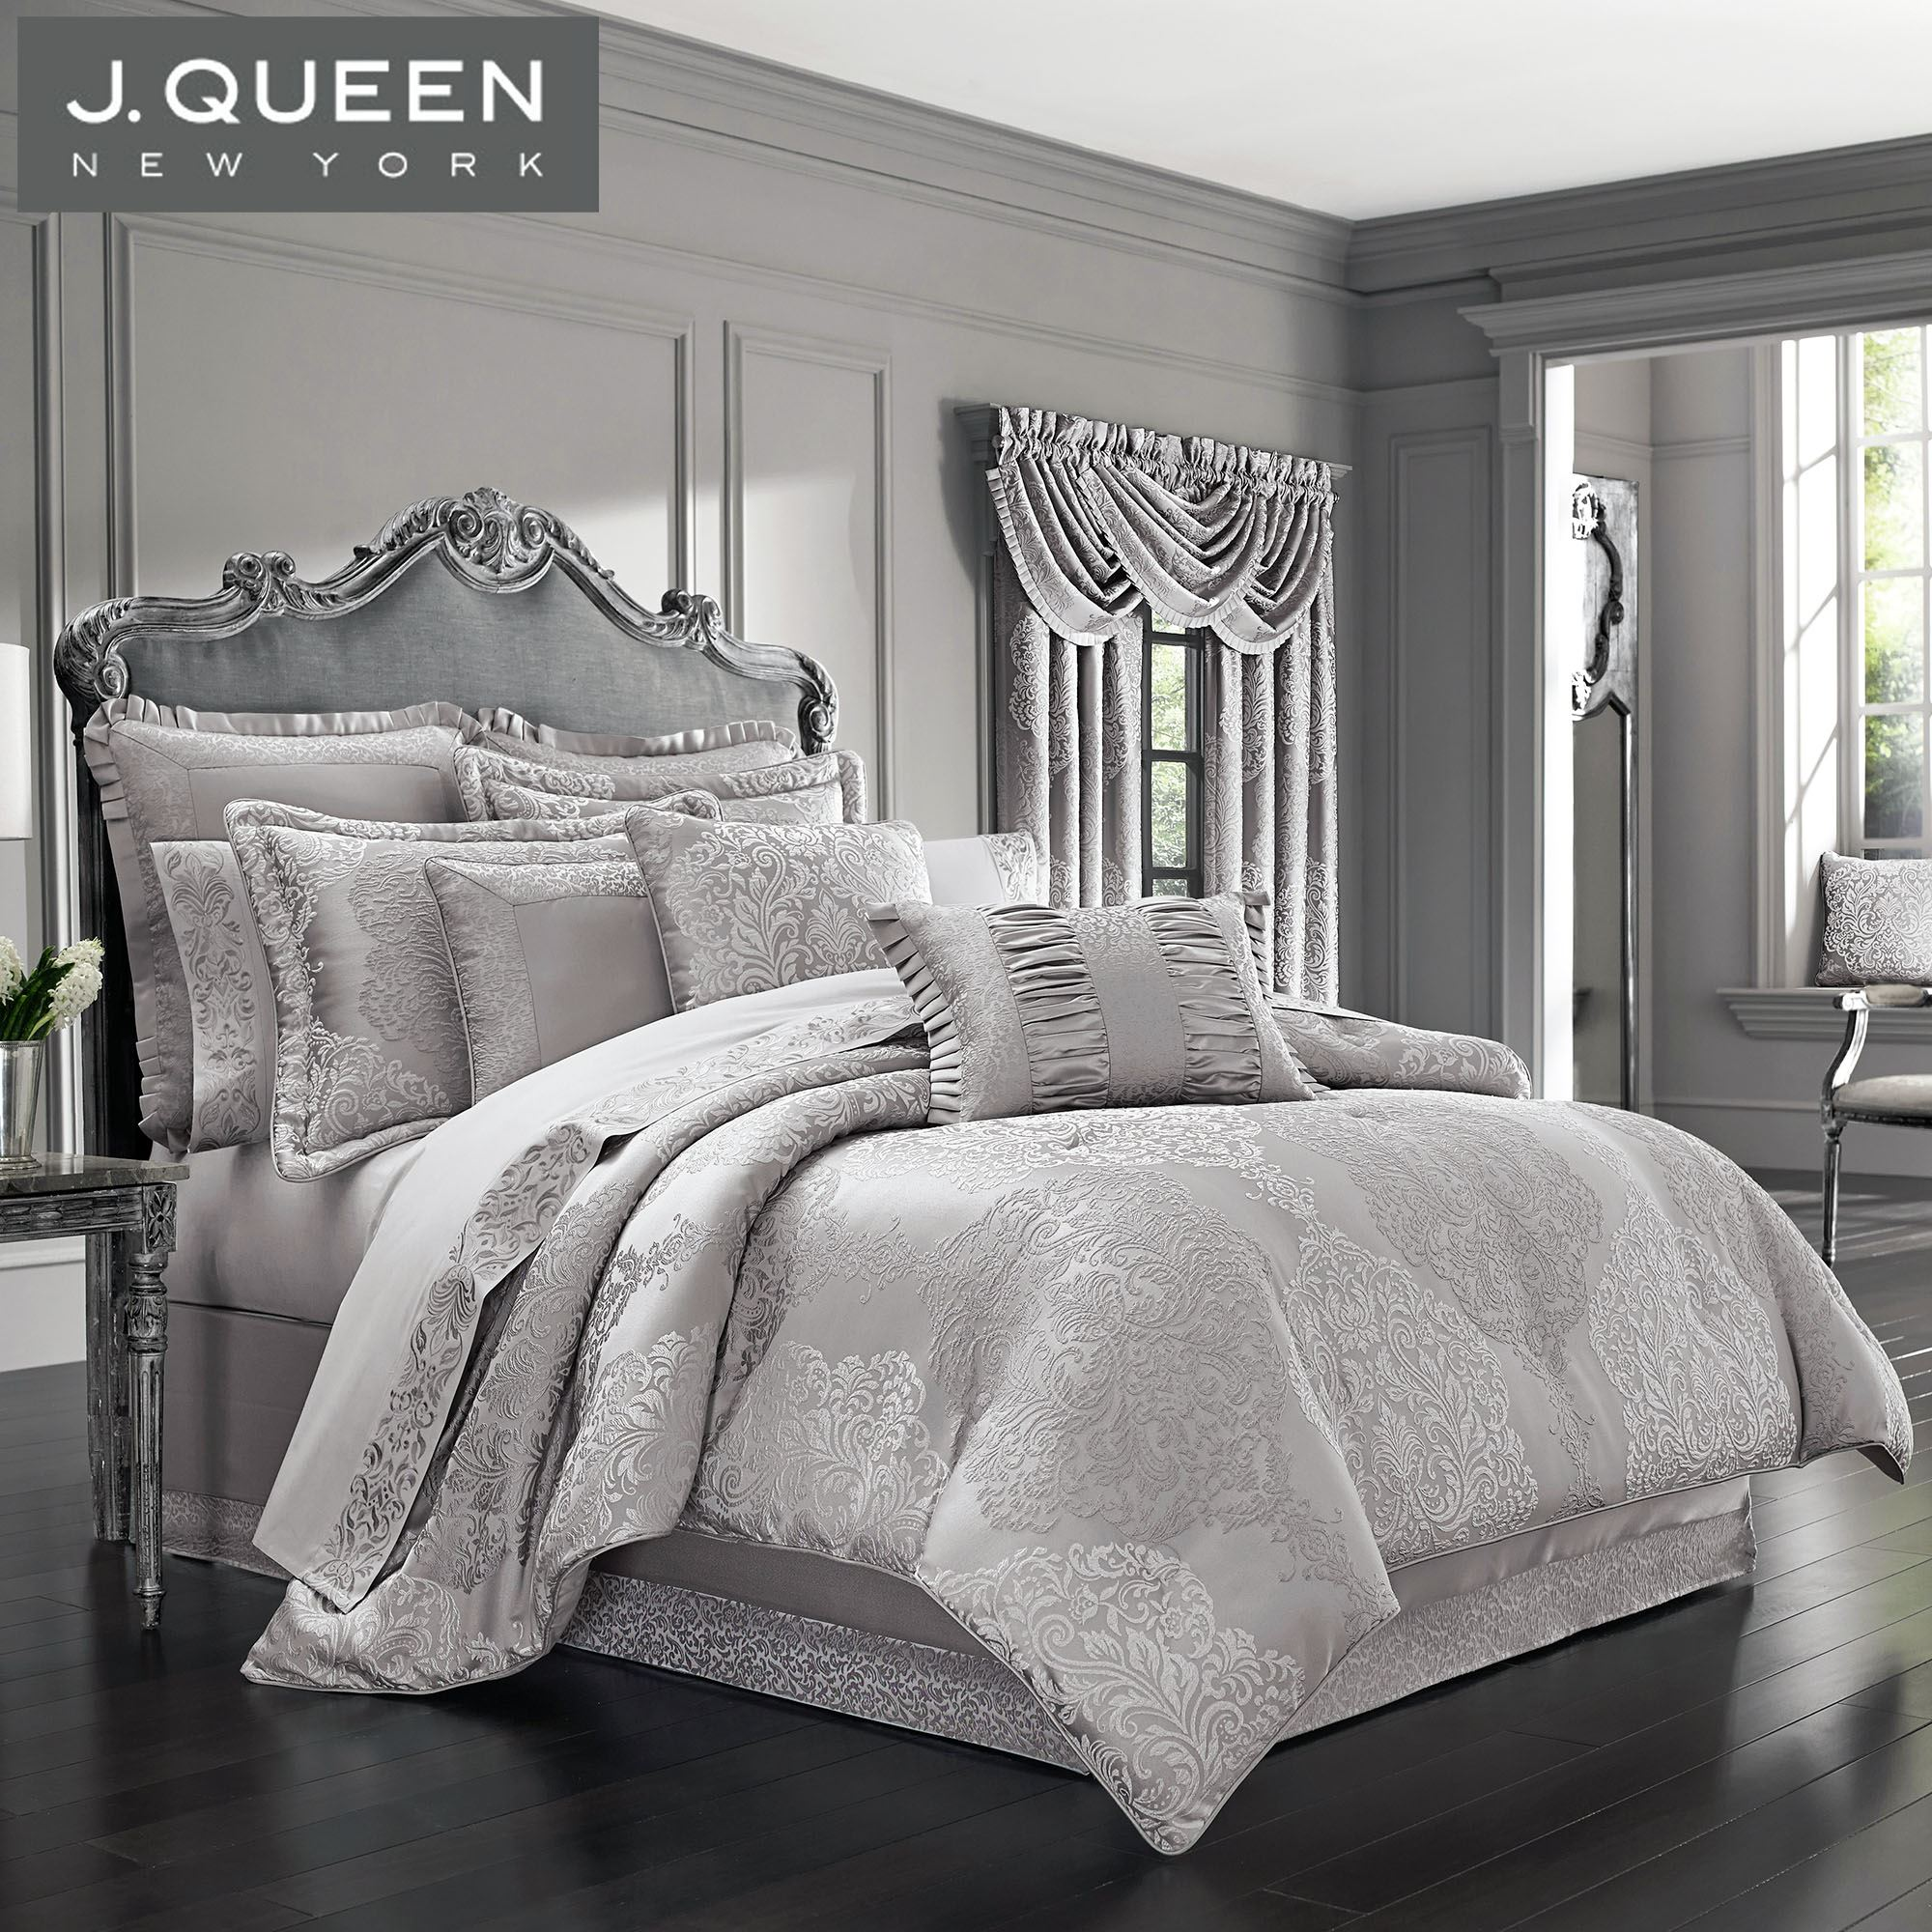 La Scala Silver Medallion Comforter Bedding By J Queen New York